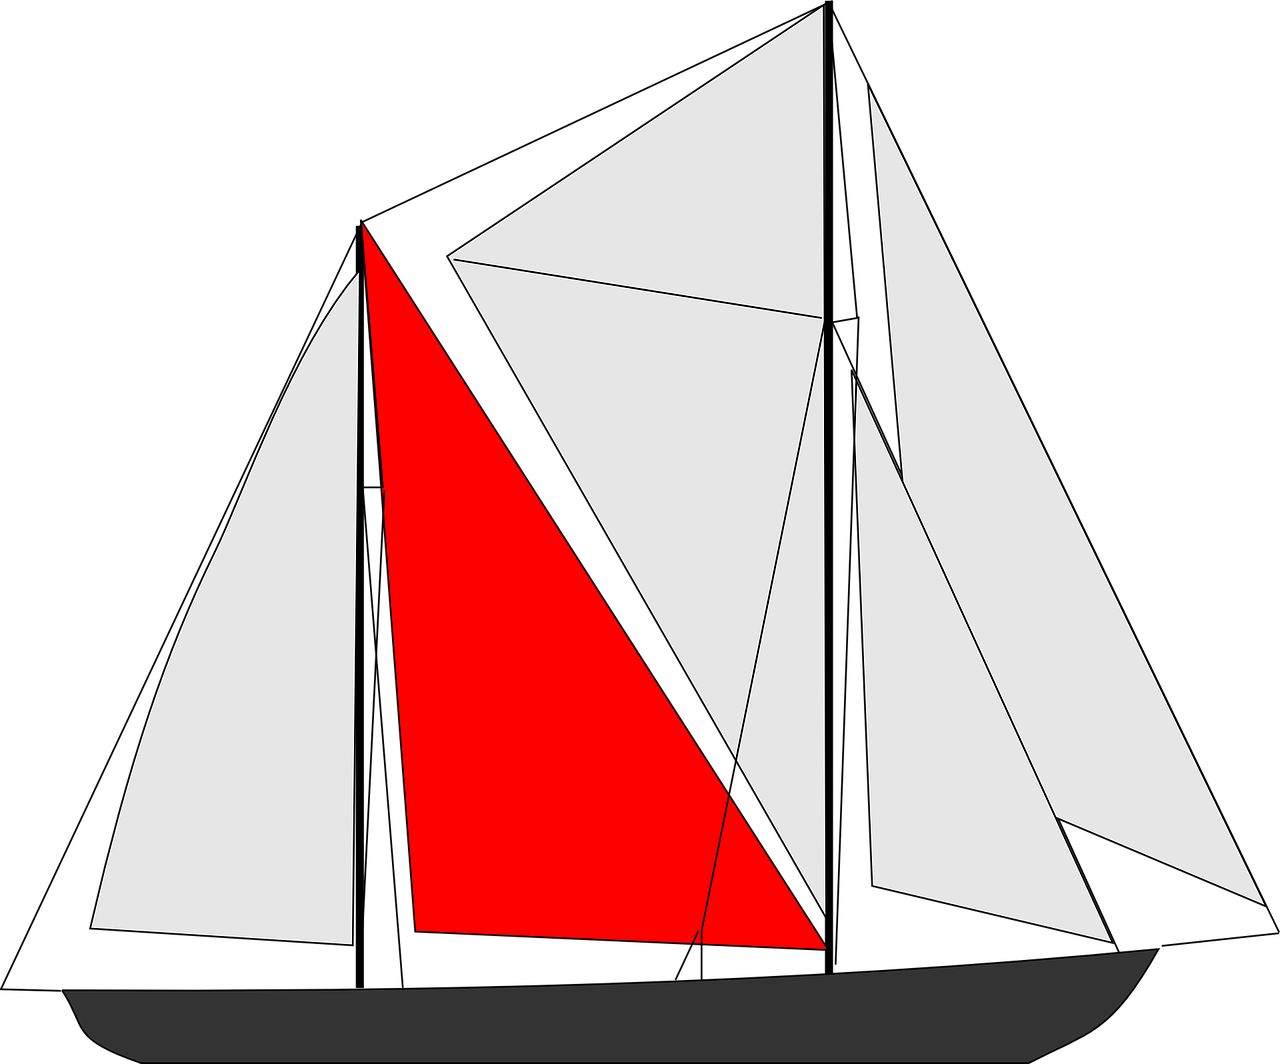 How to draw a boat 12